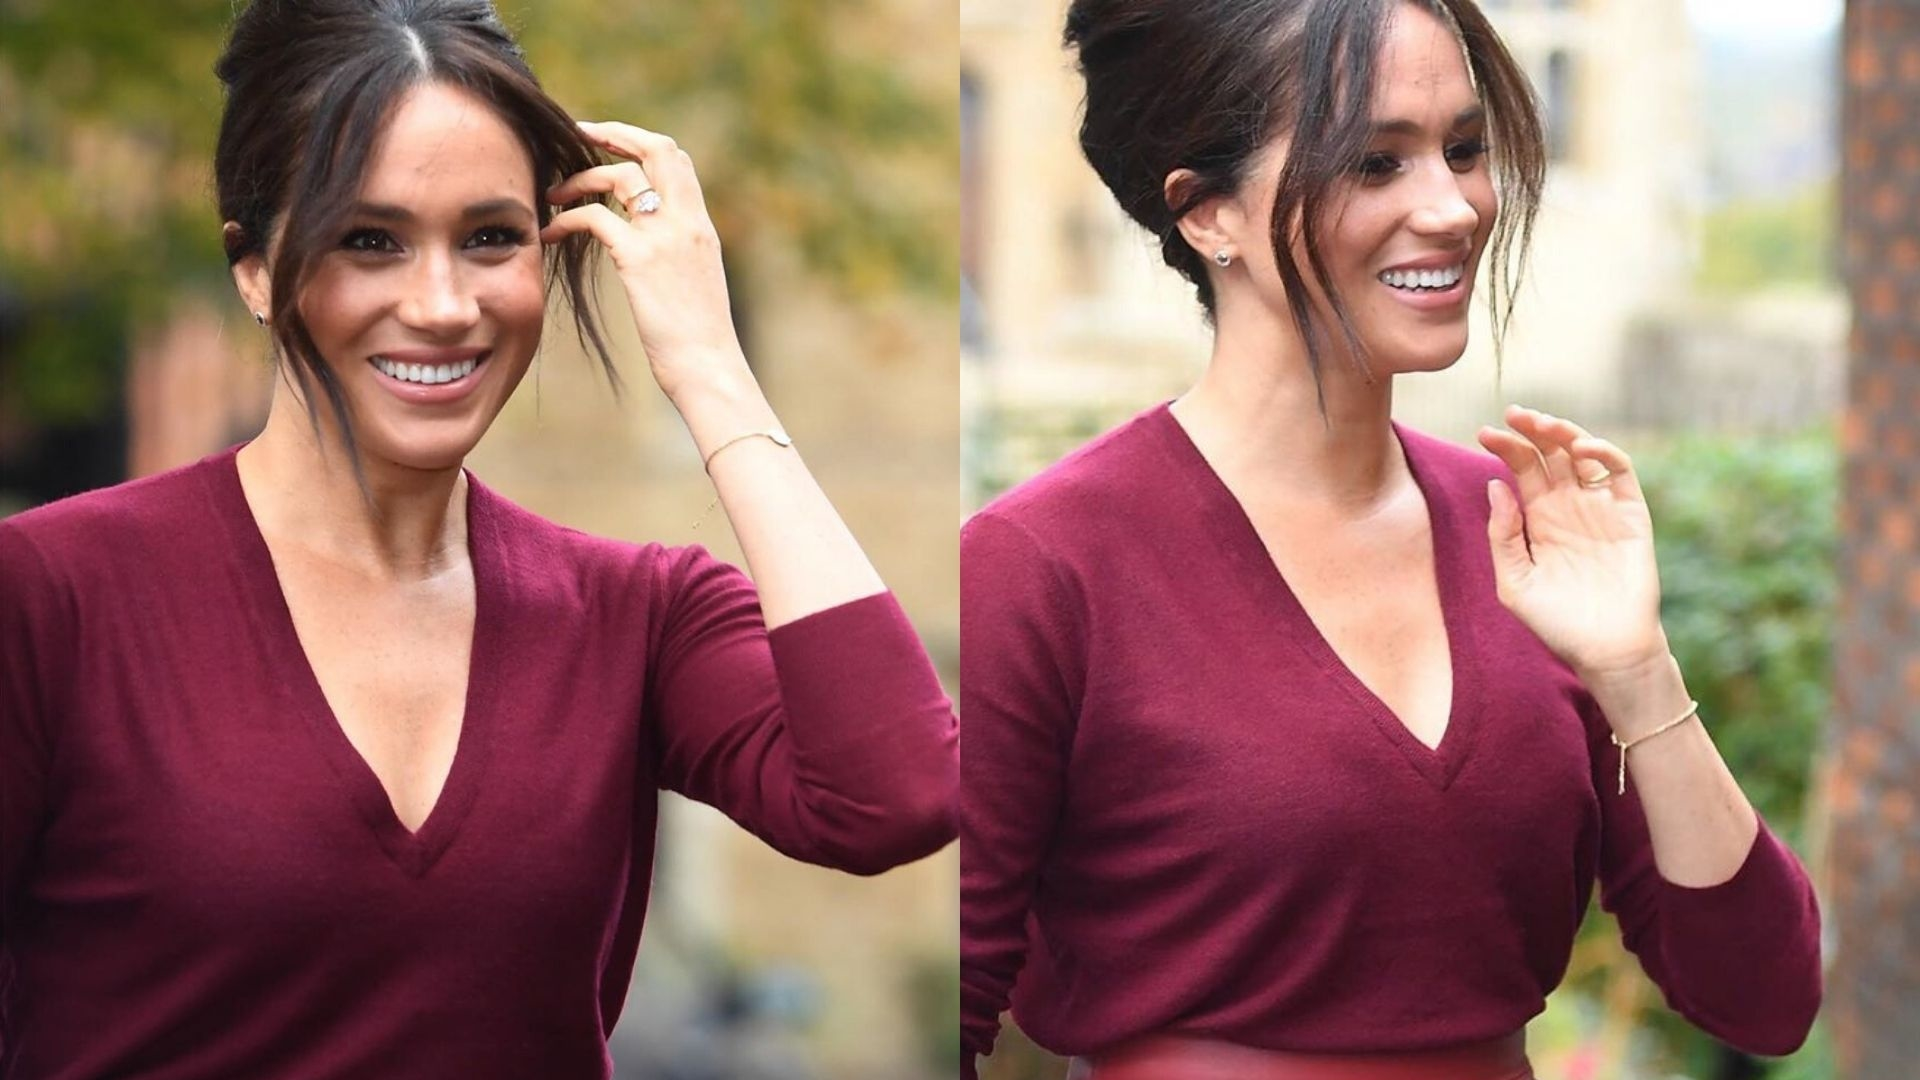 Meghan Markle Gives Us All A Lesson In Autumnal Styling With Latest Burgundy Outfit